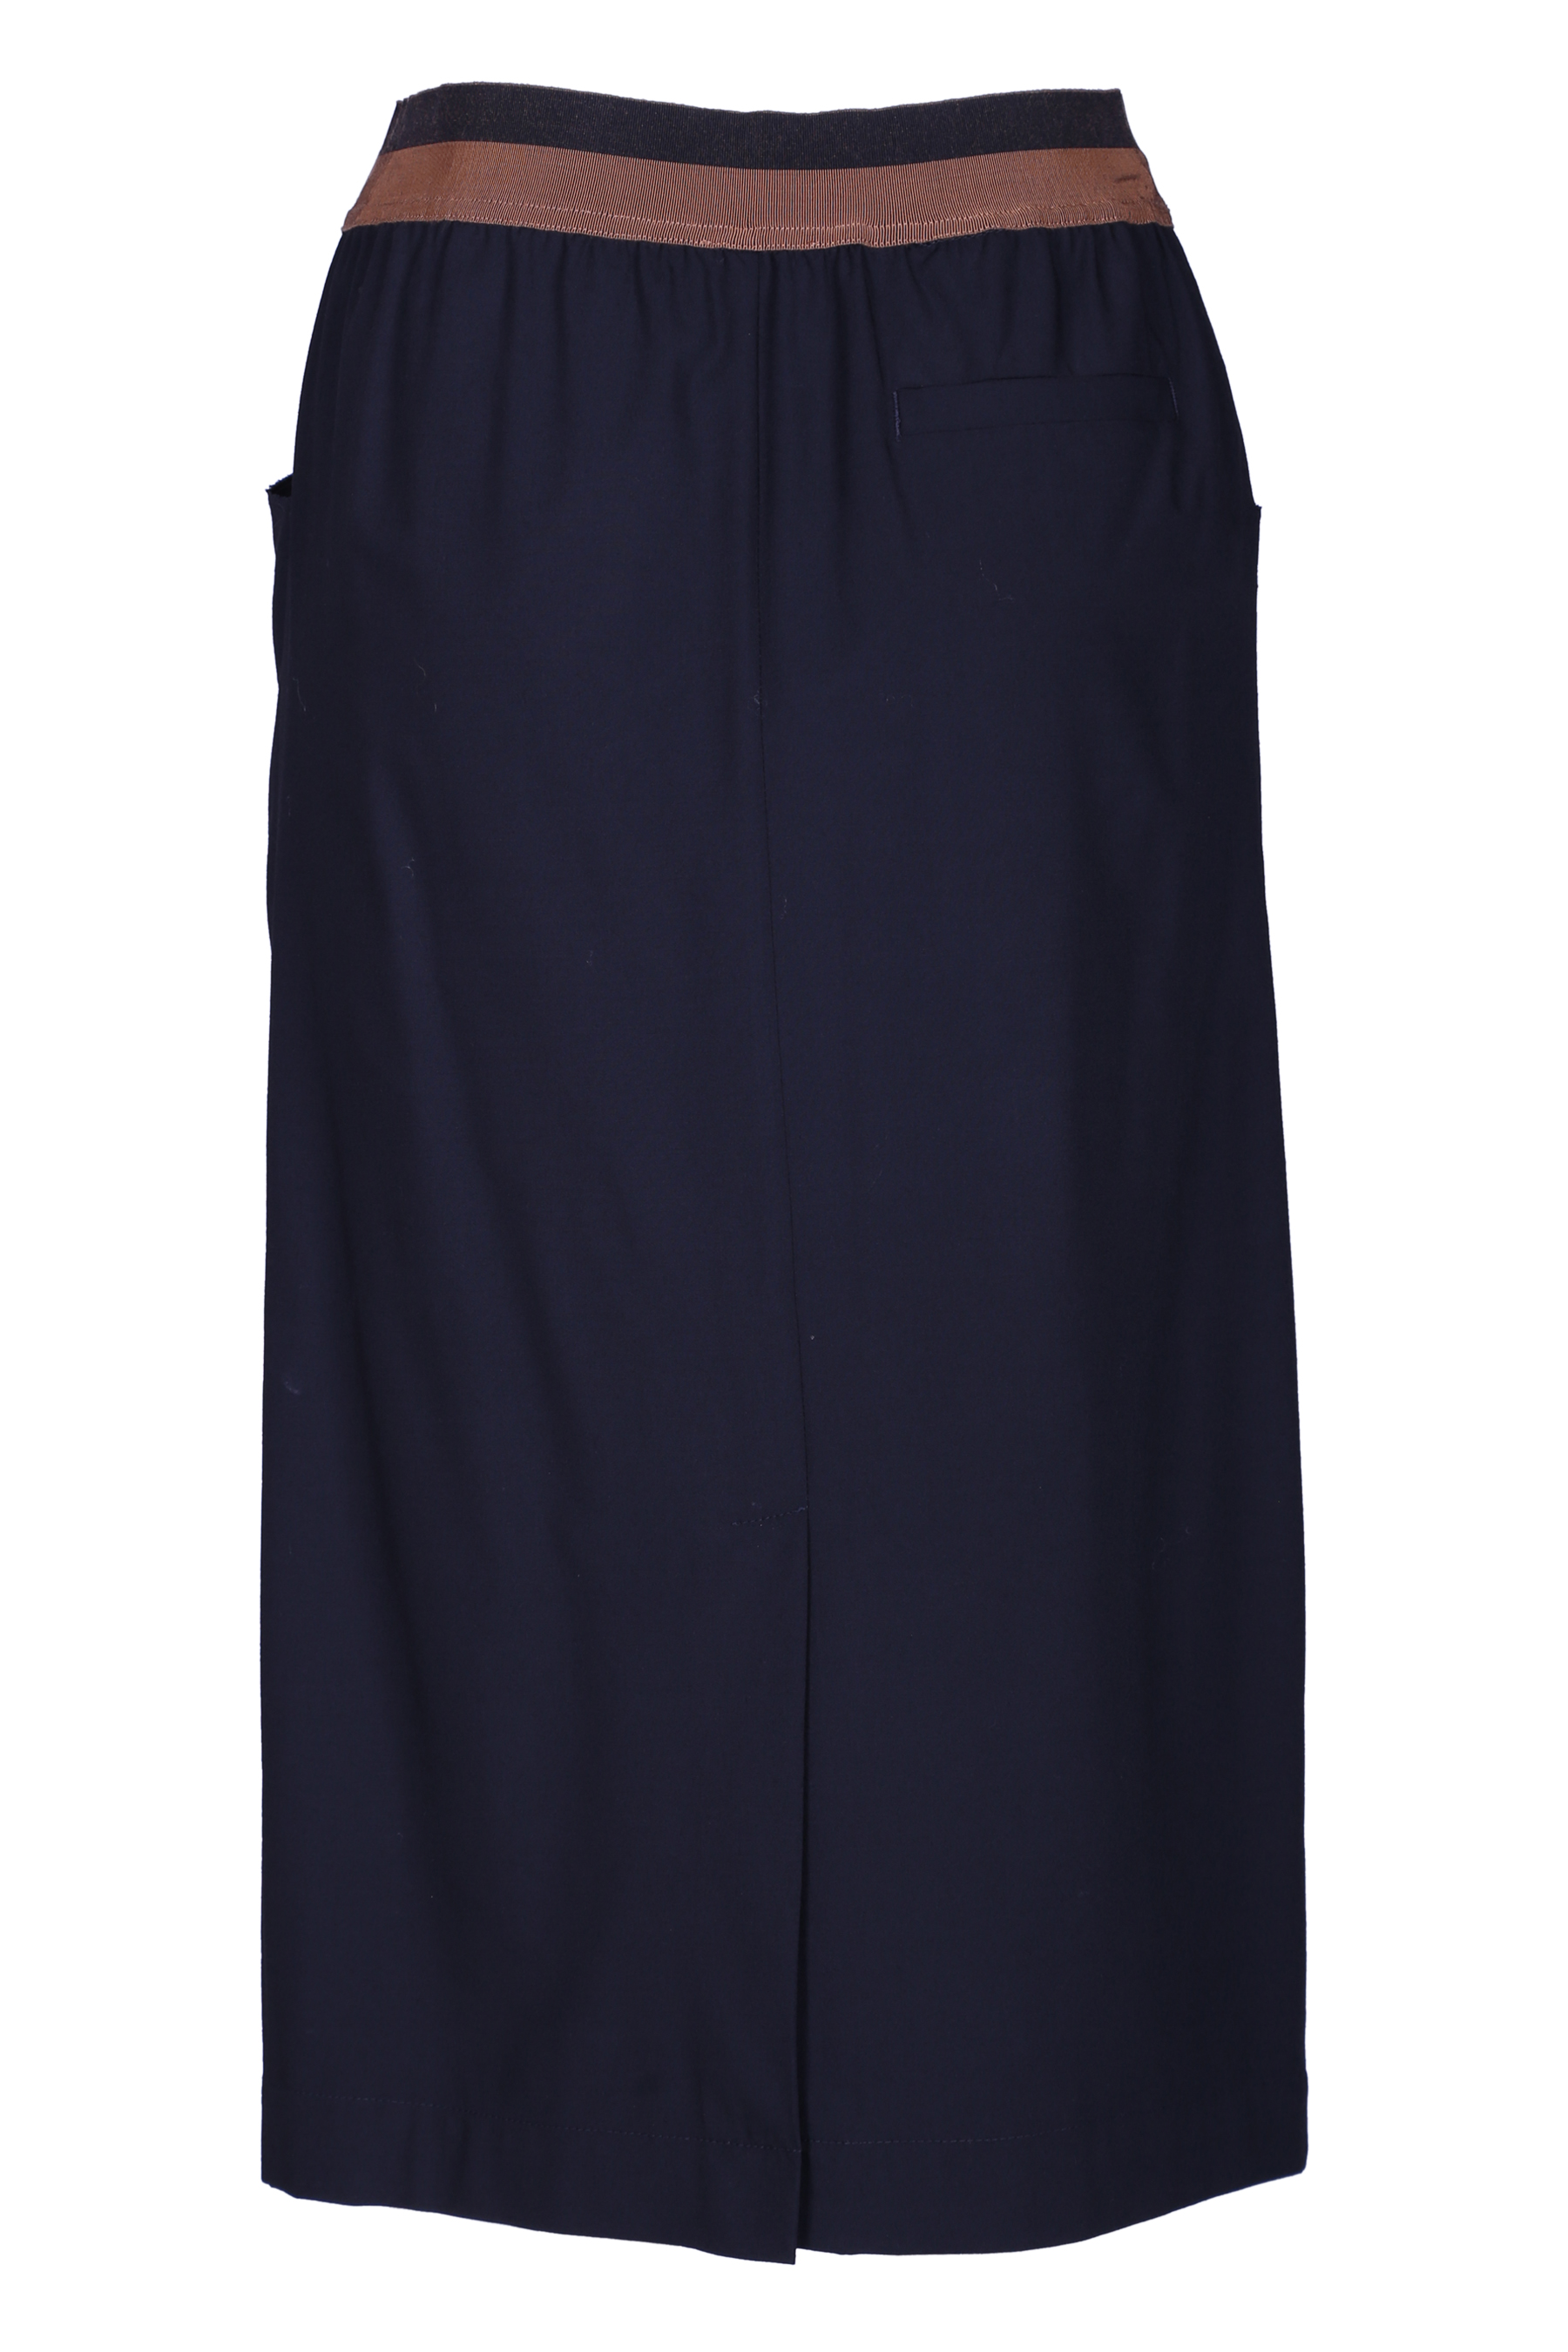 SKIRT IN FRESH WOOL STRETCH MOMONI | Skirts | MOSK0030990